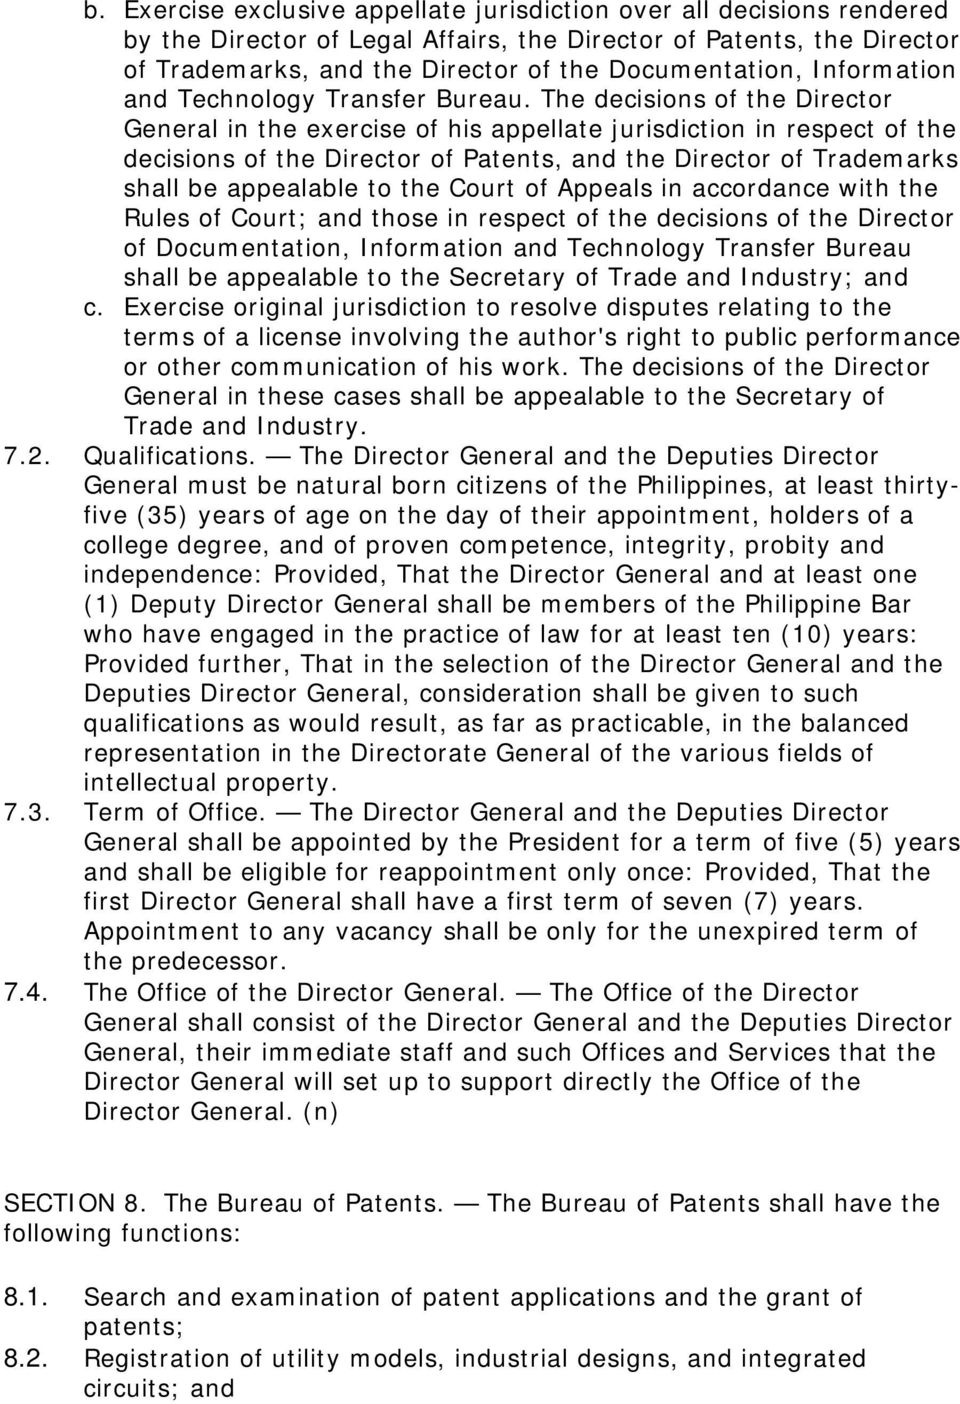 The decisions of the Director General in the exercise of his appellate jurisdiction in respect of the decisions of the Director of Patents, and the Director of Trademarks shall be appealable to the